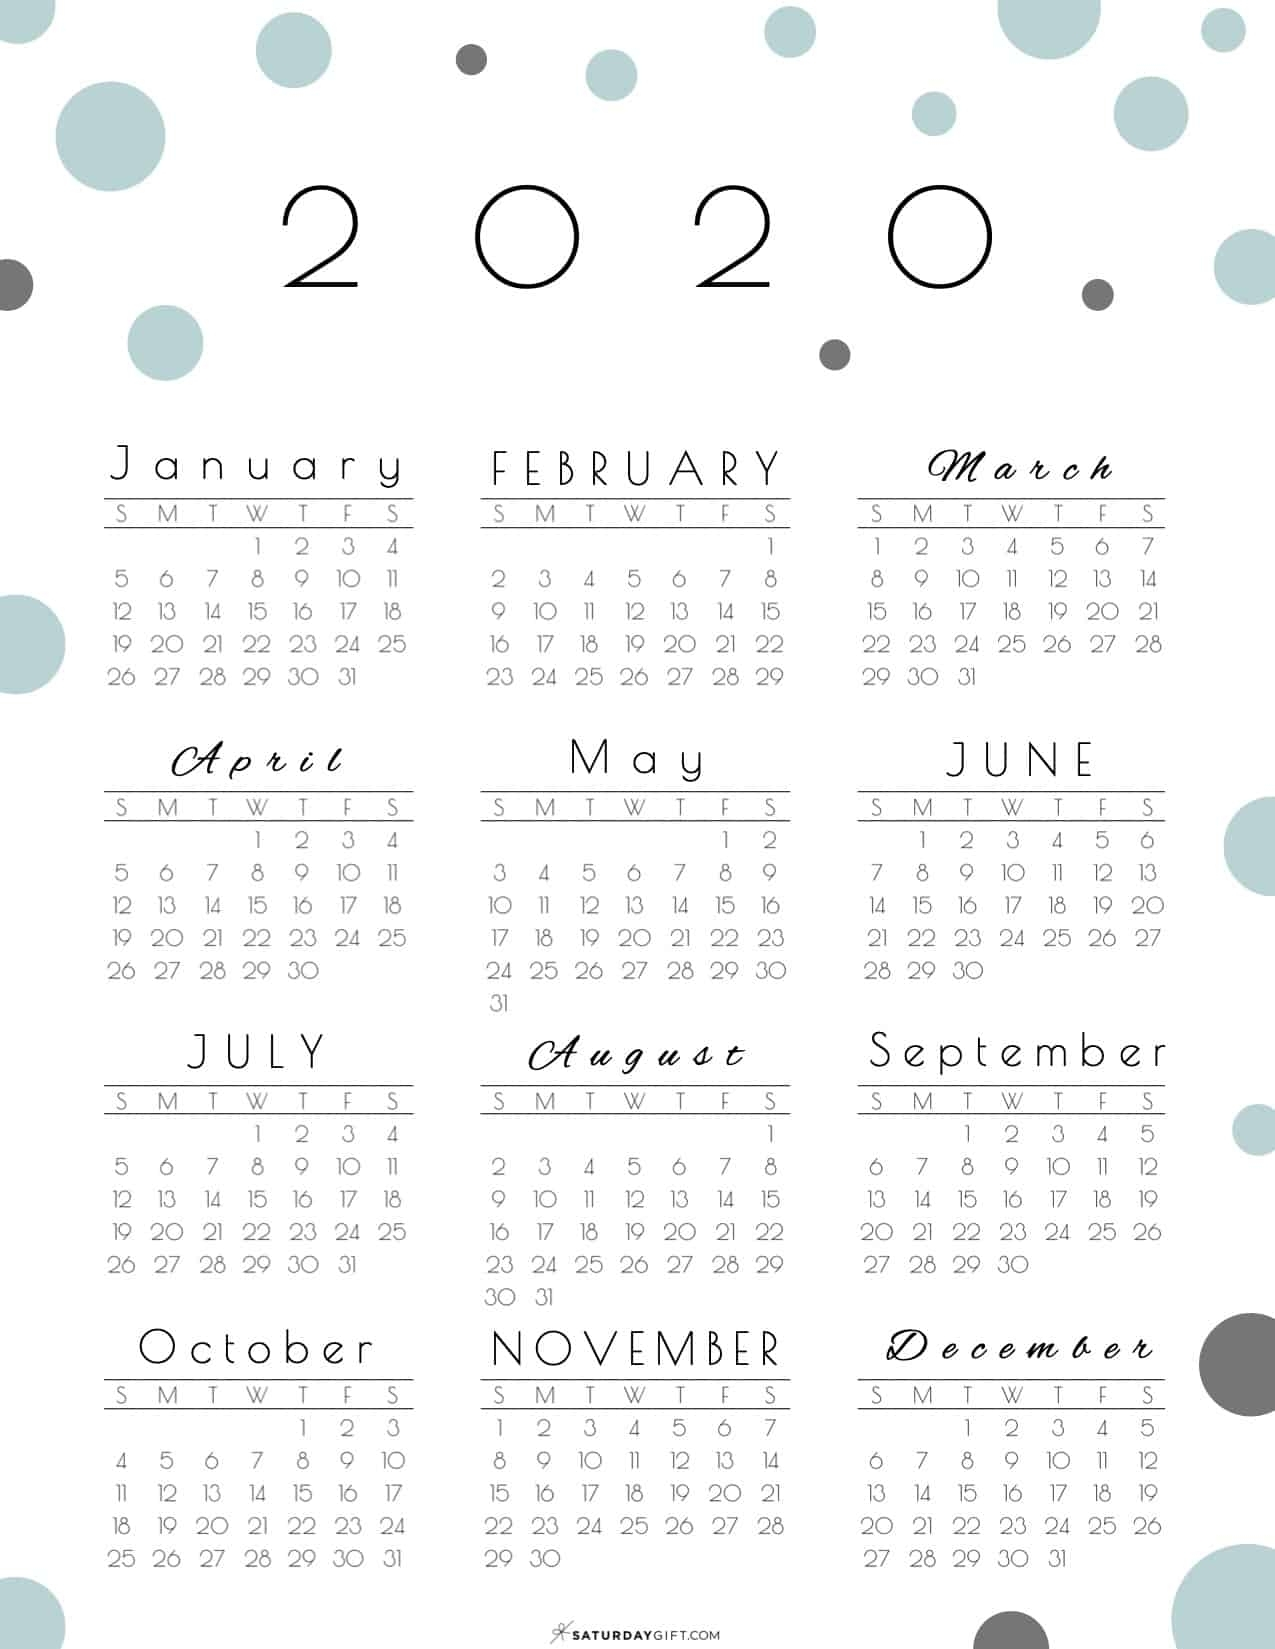 Year At A Glance Calendar 2020 - Pretty (And Free!) Printable throughout Free 2020 Year At A Glance Calendars